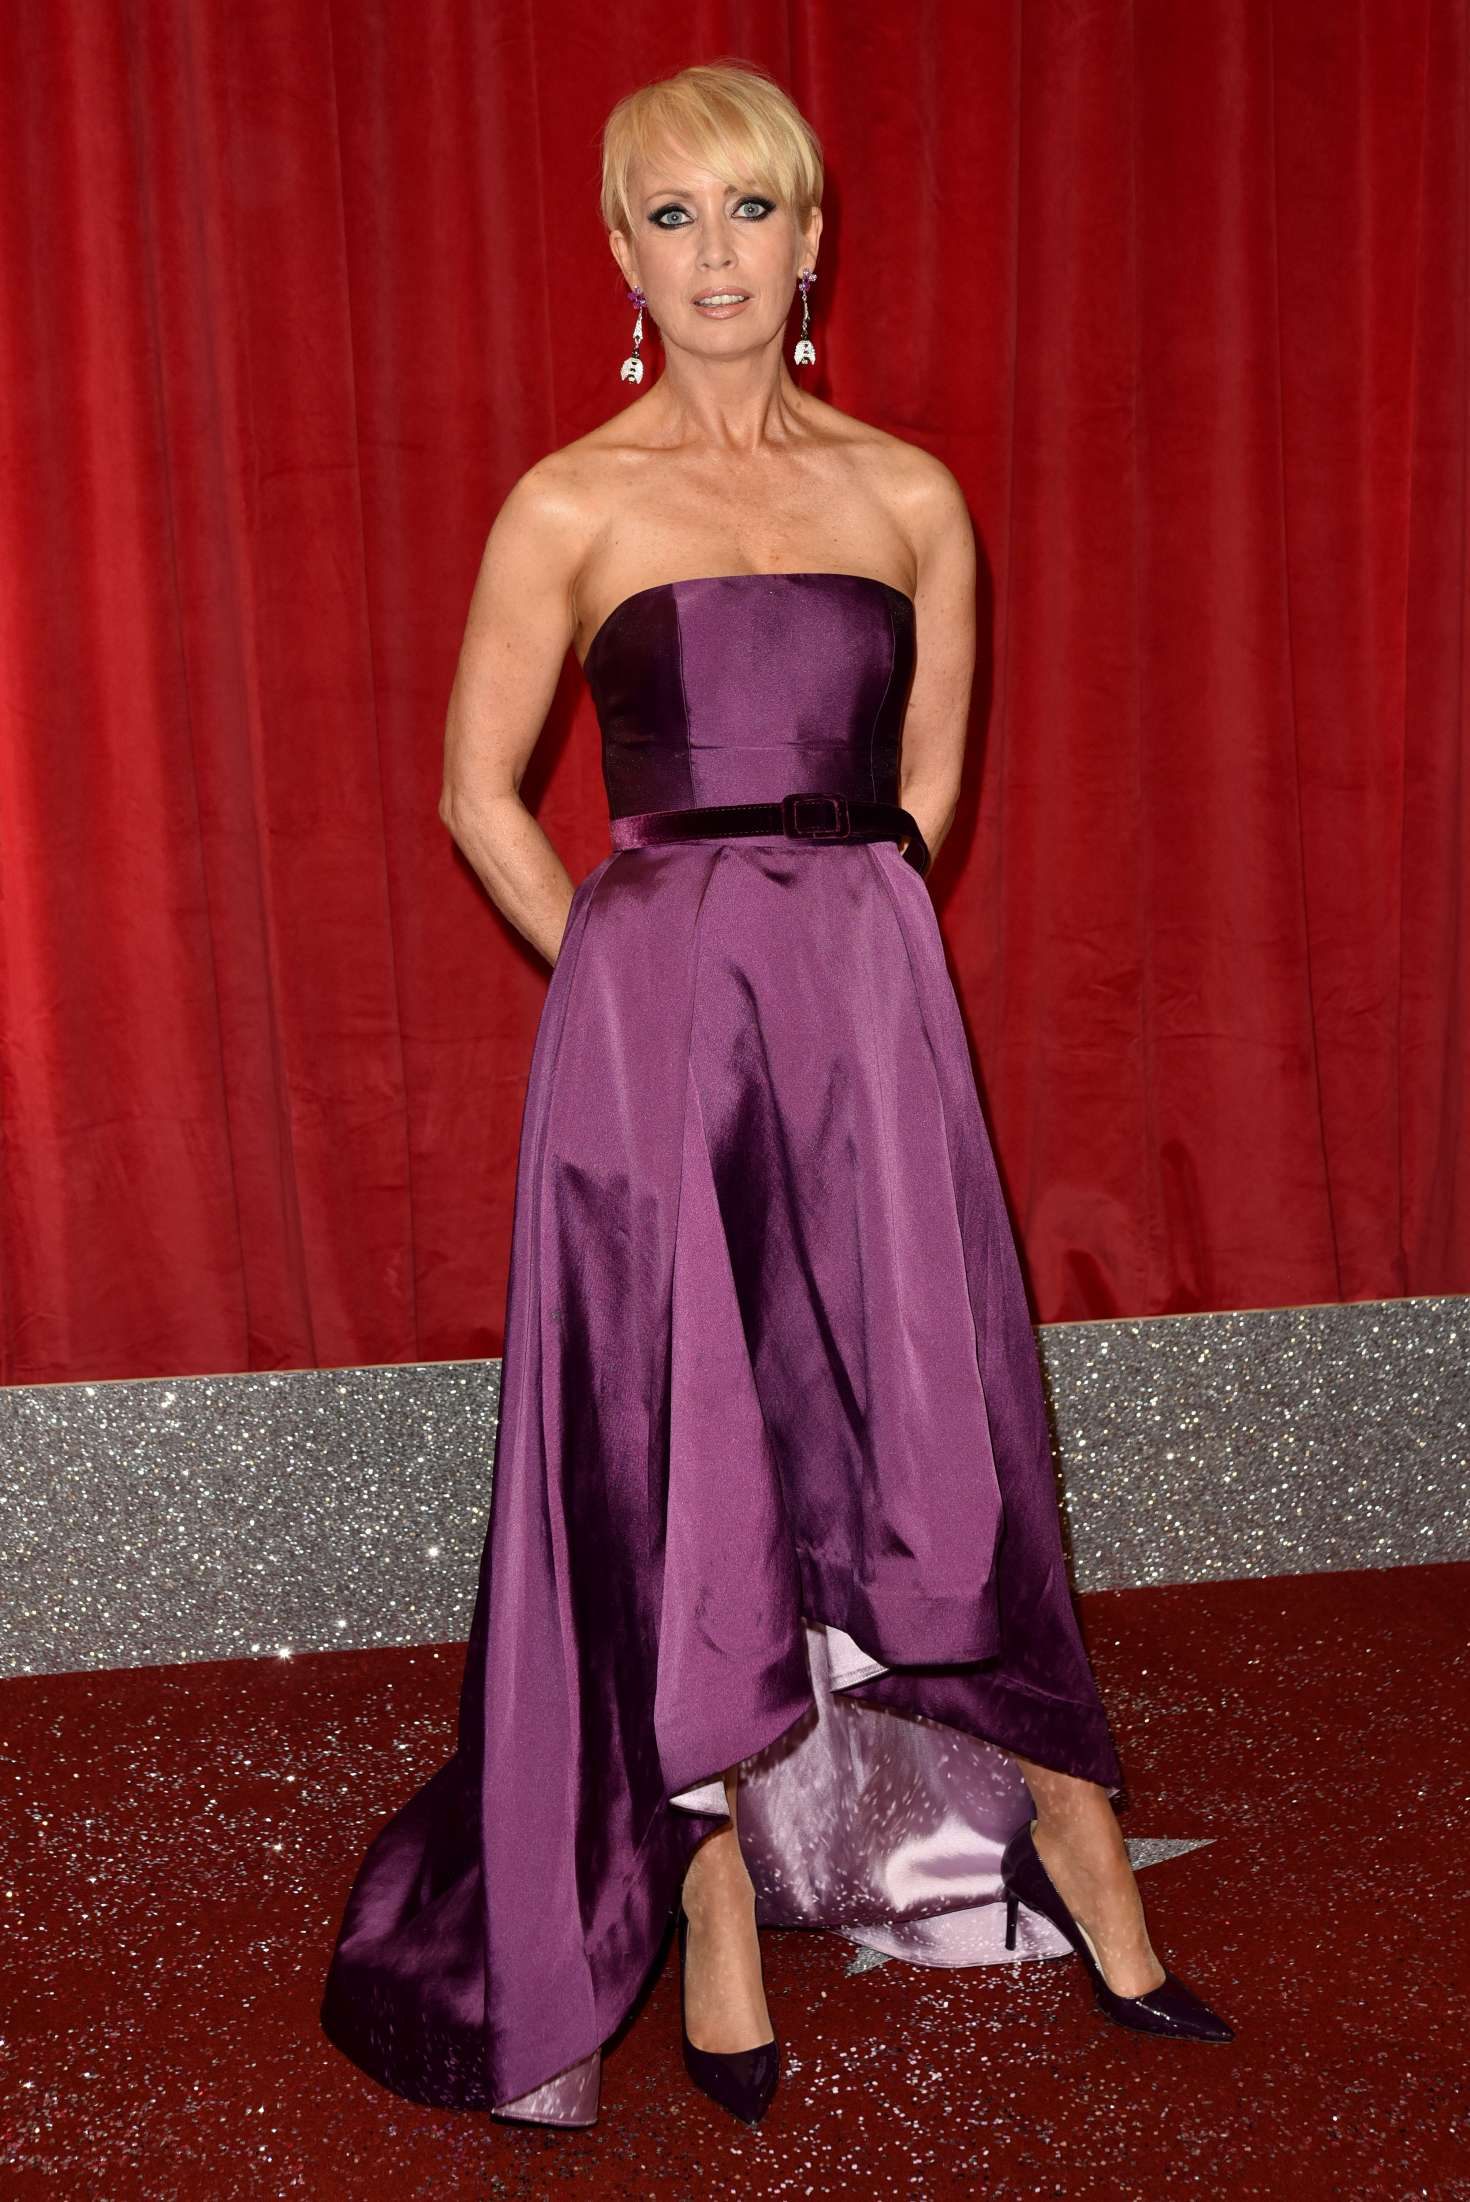 British Soap Awards 2017 In Manchester